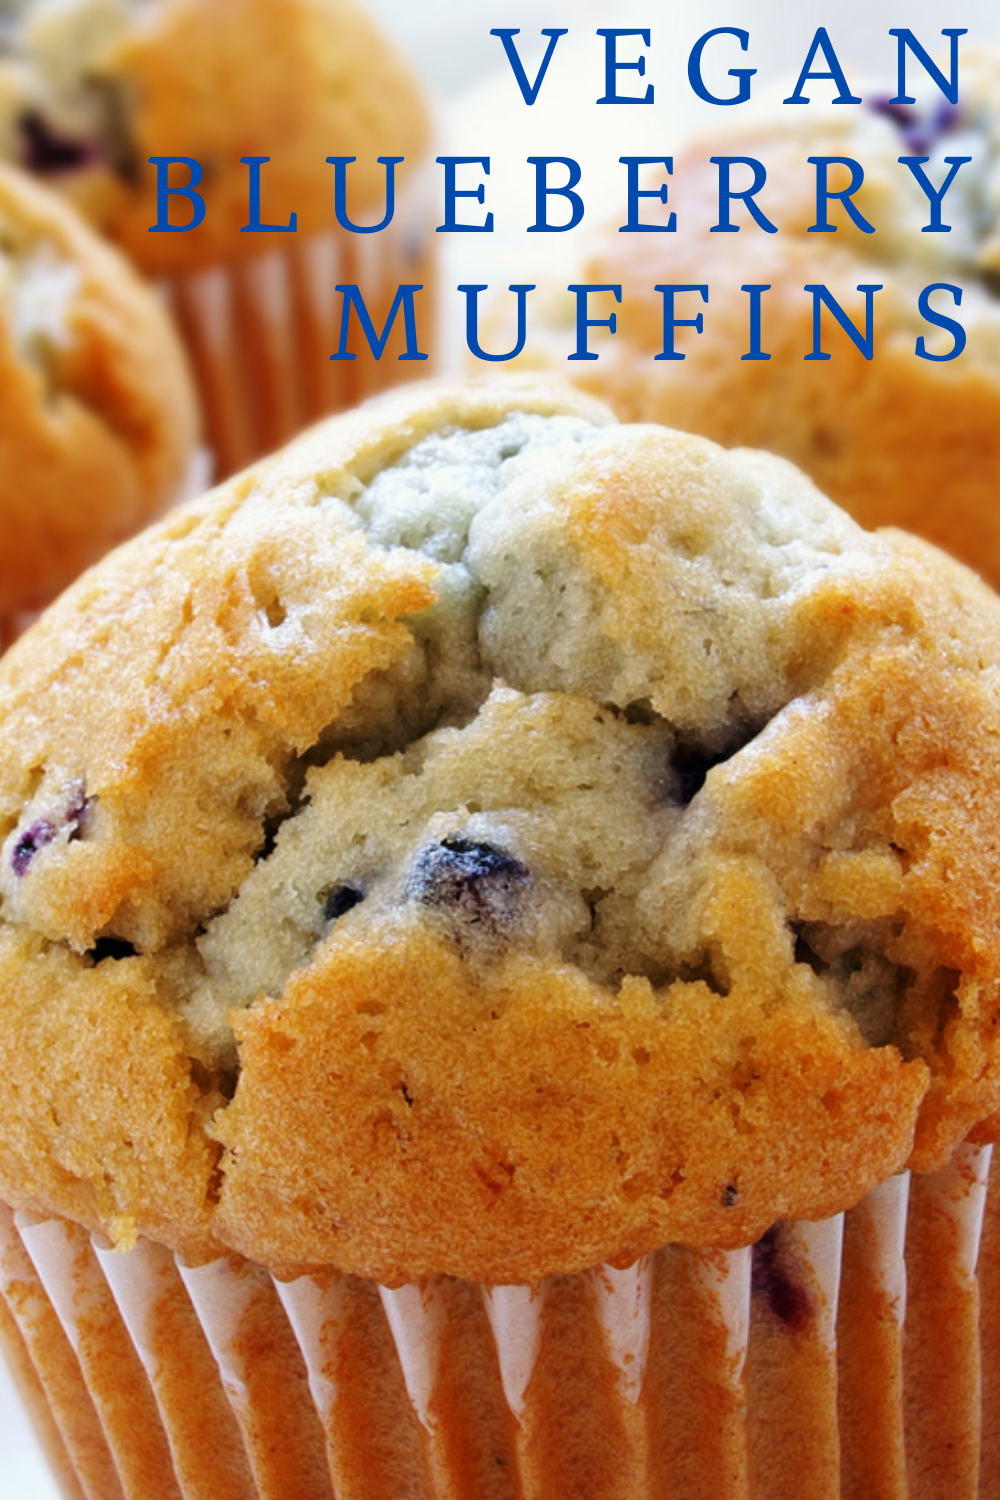 Vegan Blueberry Muffins! Dairy-free, vegan, and ready in 30 minutes! Perfect for packing in lunches or a quick breakfast on the go!